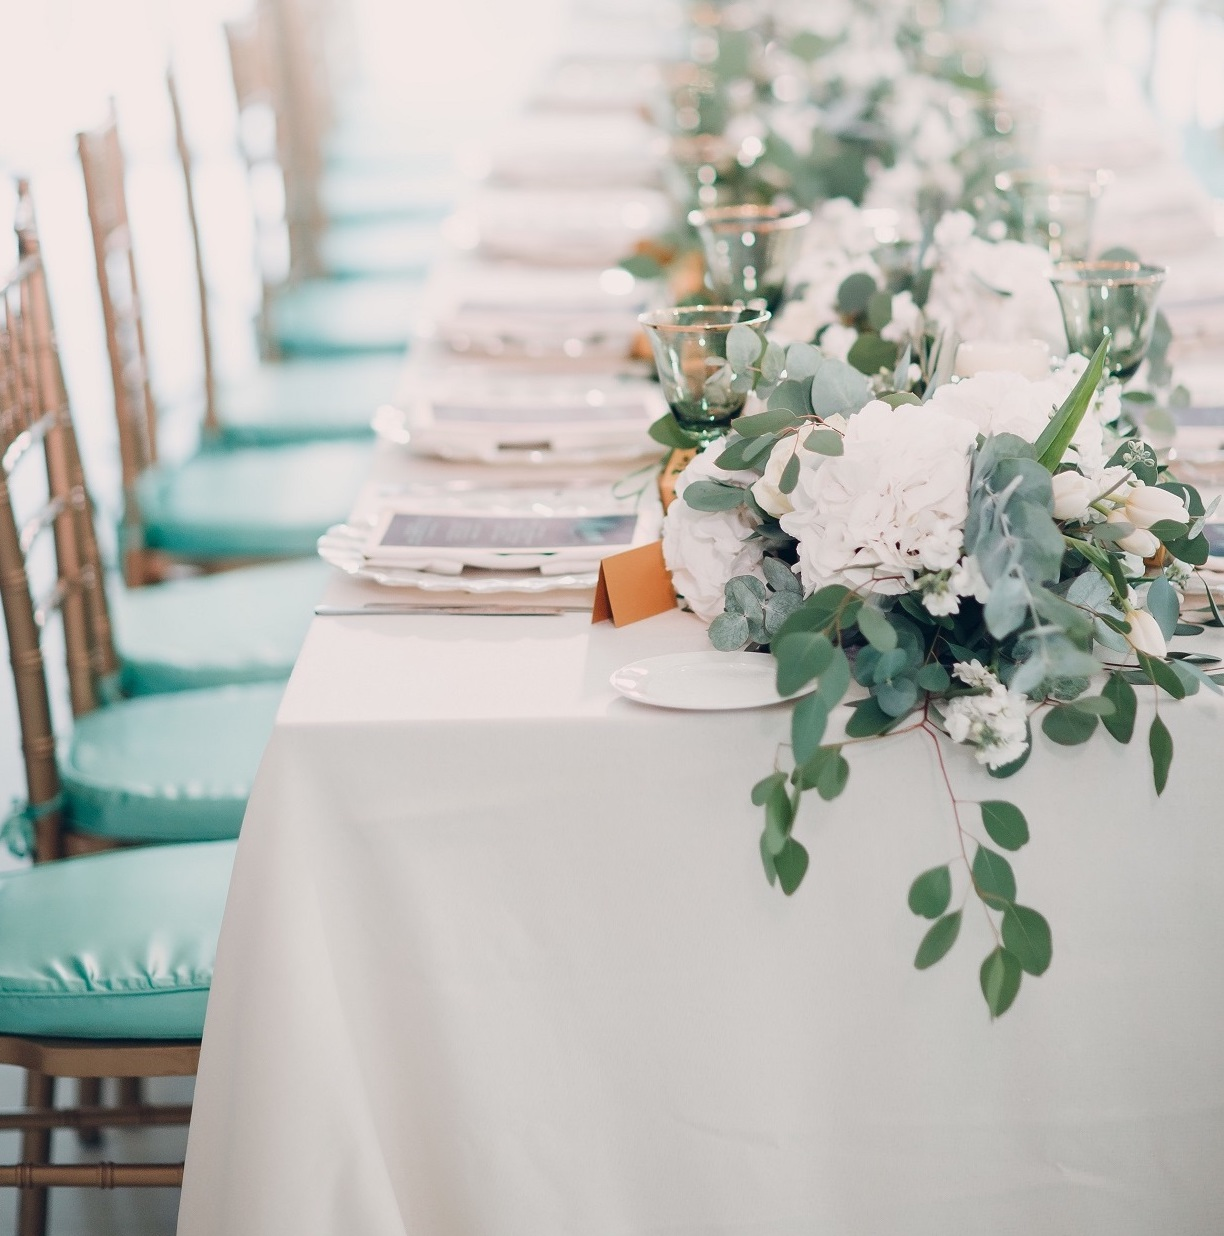 6 Things to Consider When Choosing a Wedding Theme